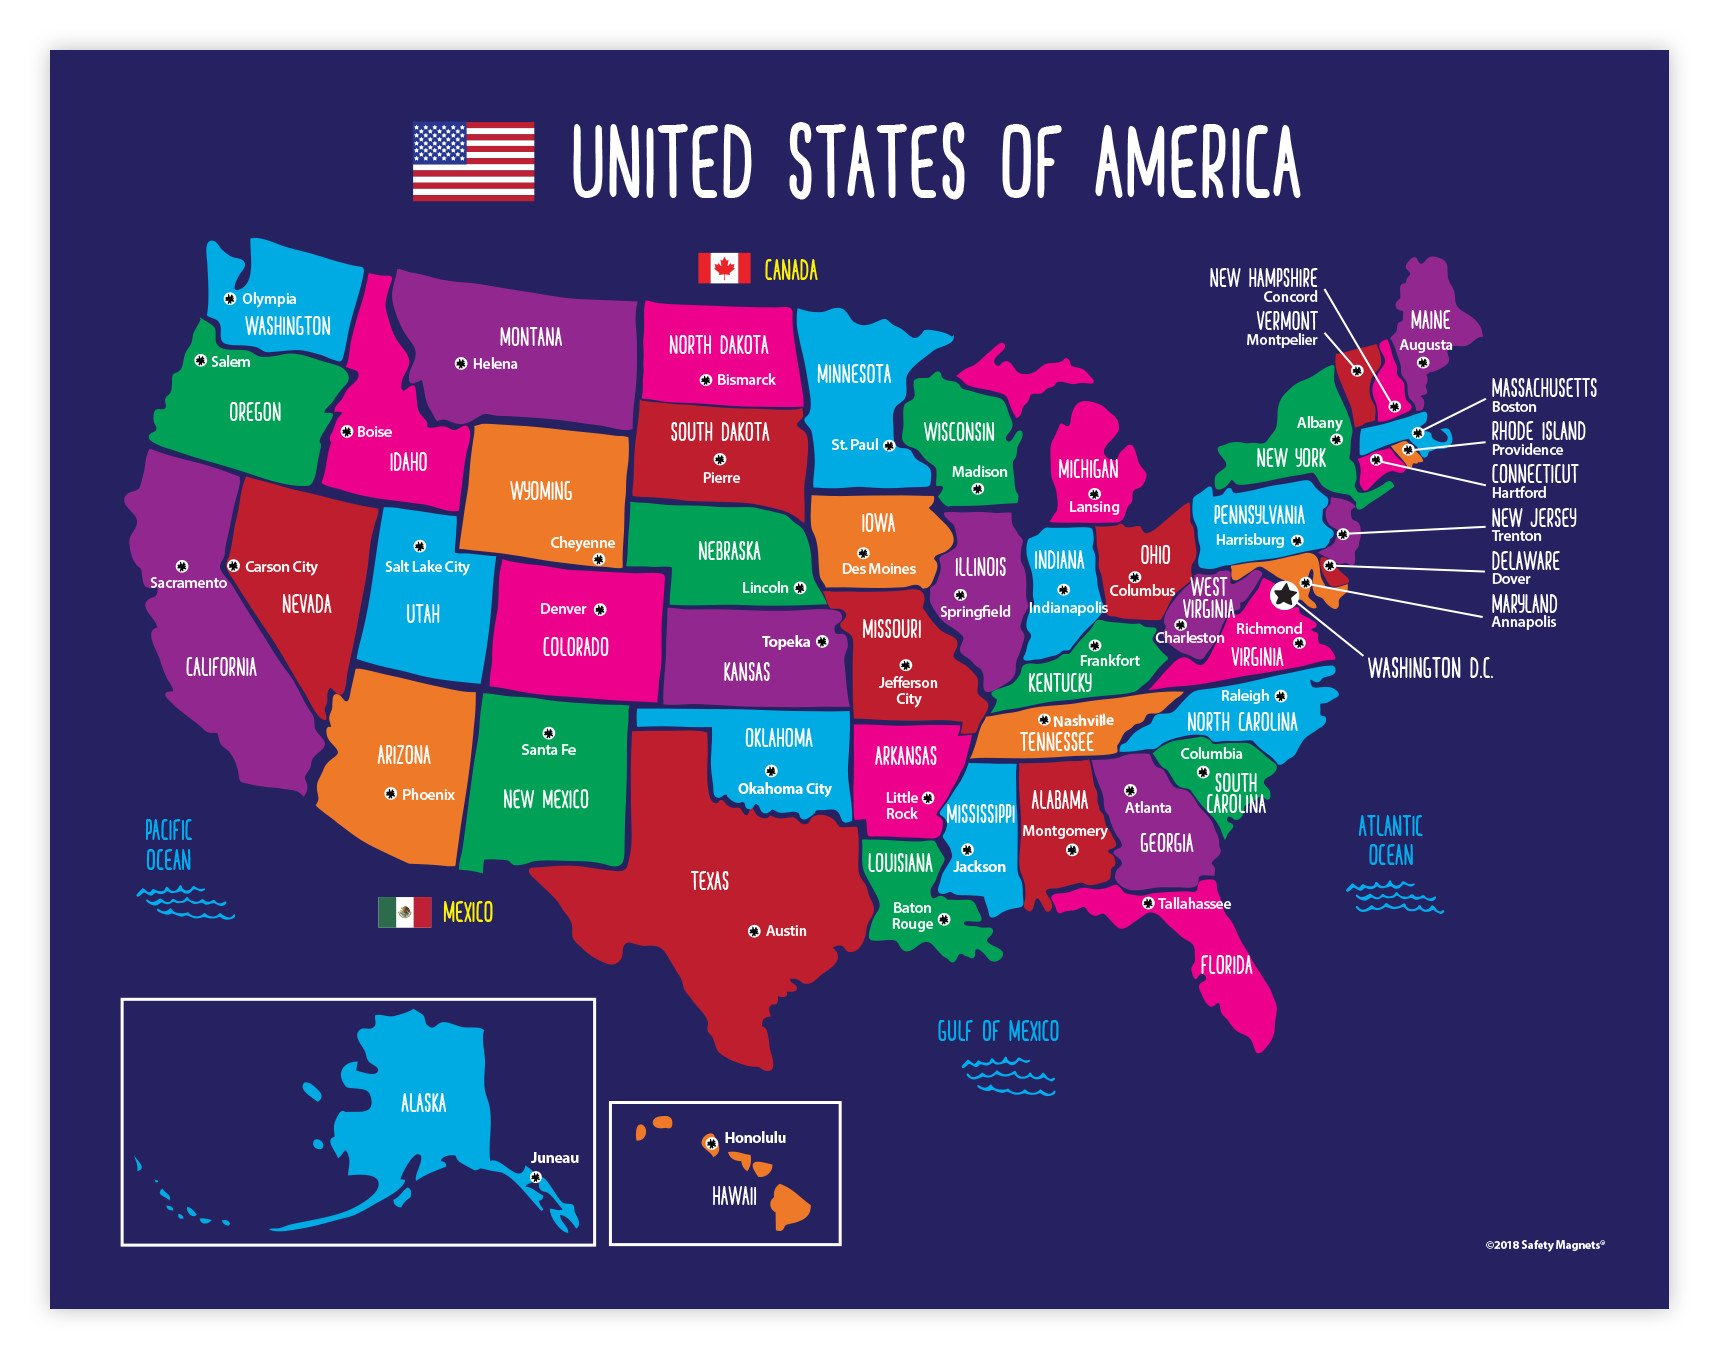 USA Map with State Capitals Educational Classroom Poster - 17 x 22 inches - Laminated